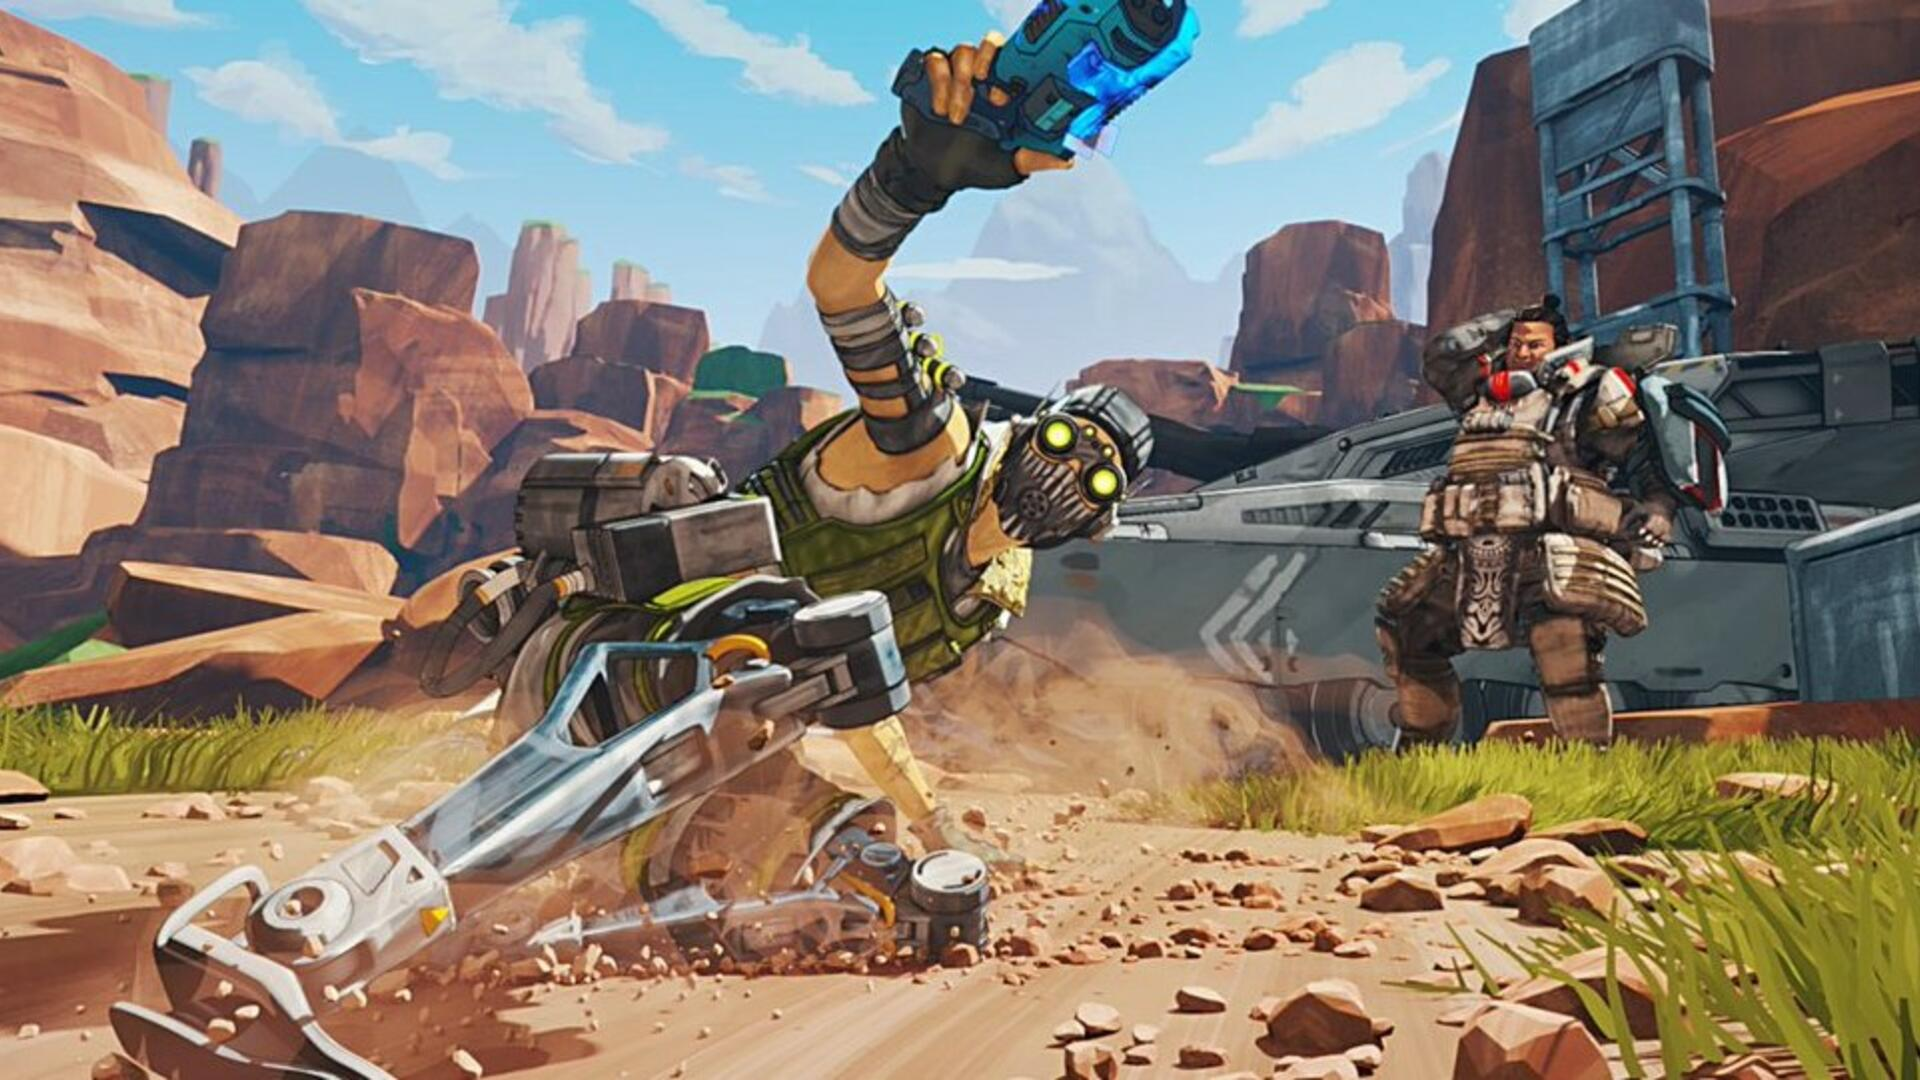 Apex Legends Season 2 Battle Pass - All New Apex Legends Season 2 Skins and Rewards